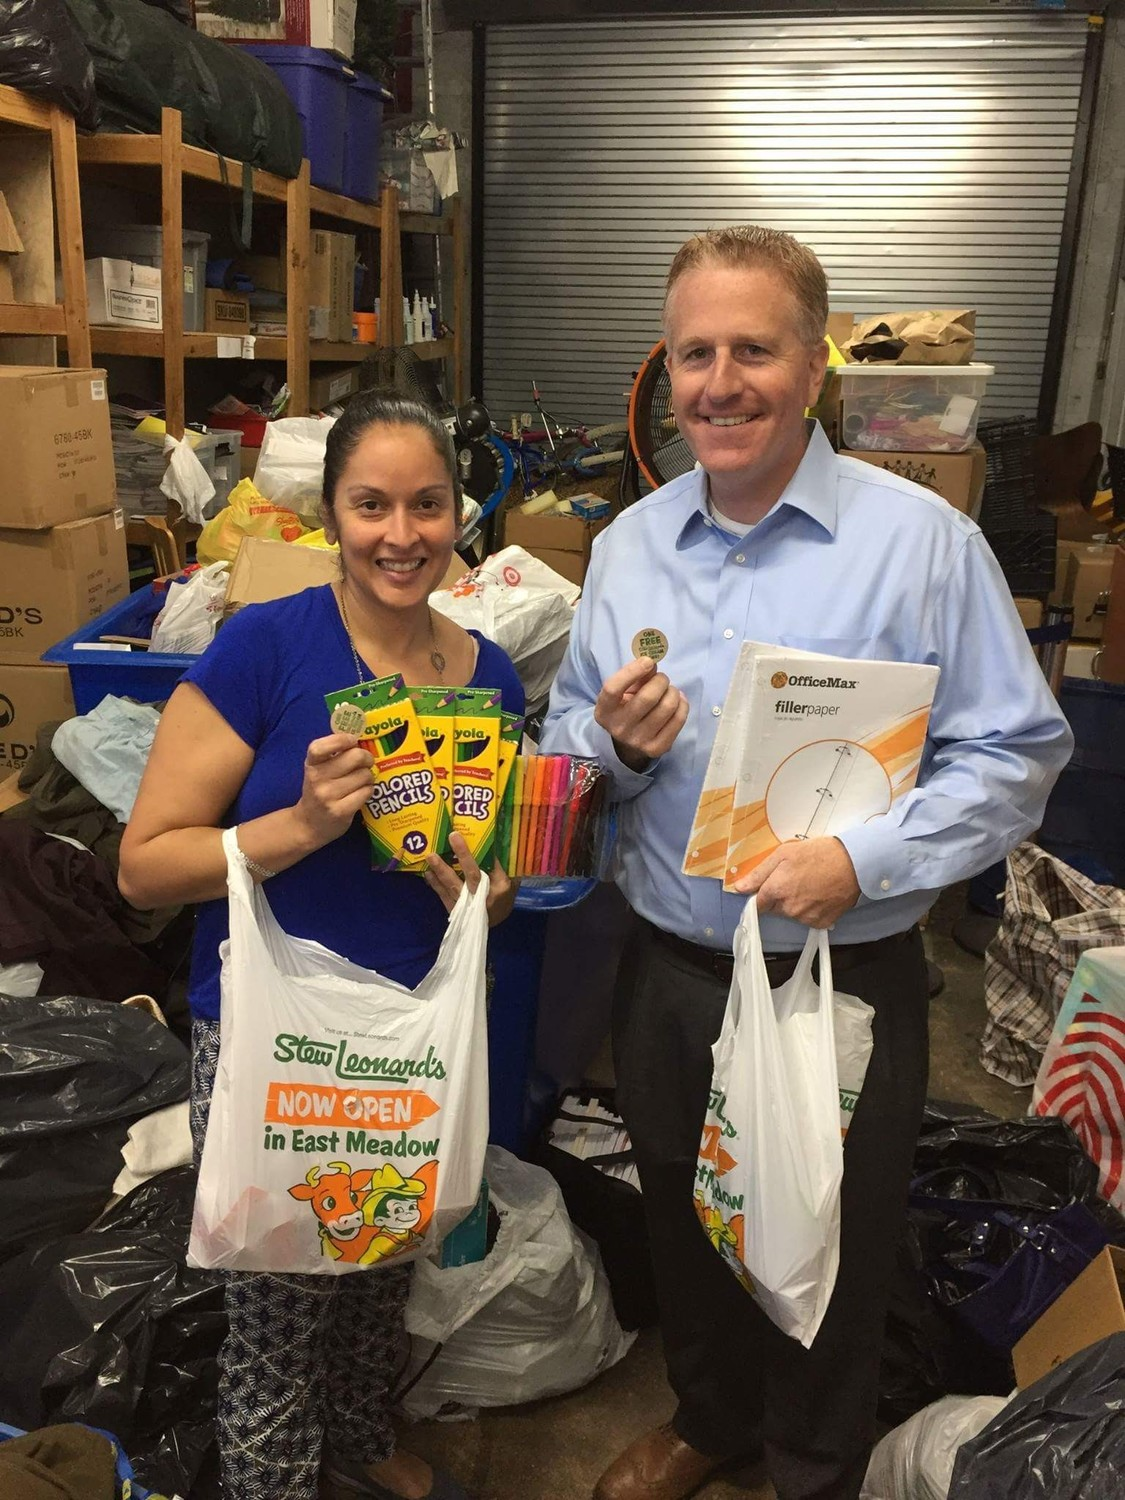 For the third consecutive year, Nice Things That Happen in East Meadow is sponsoring a school supplies drive to benefit the Interfaith Nutritional Network in Hempstead.